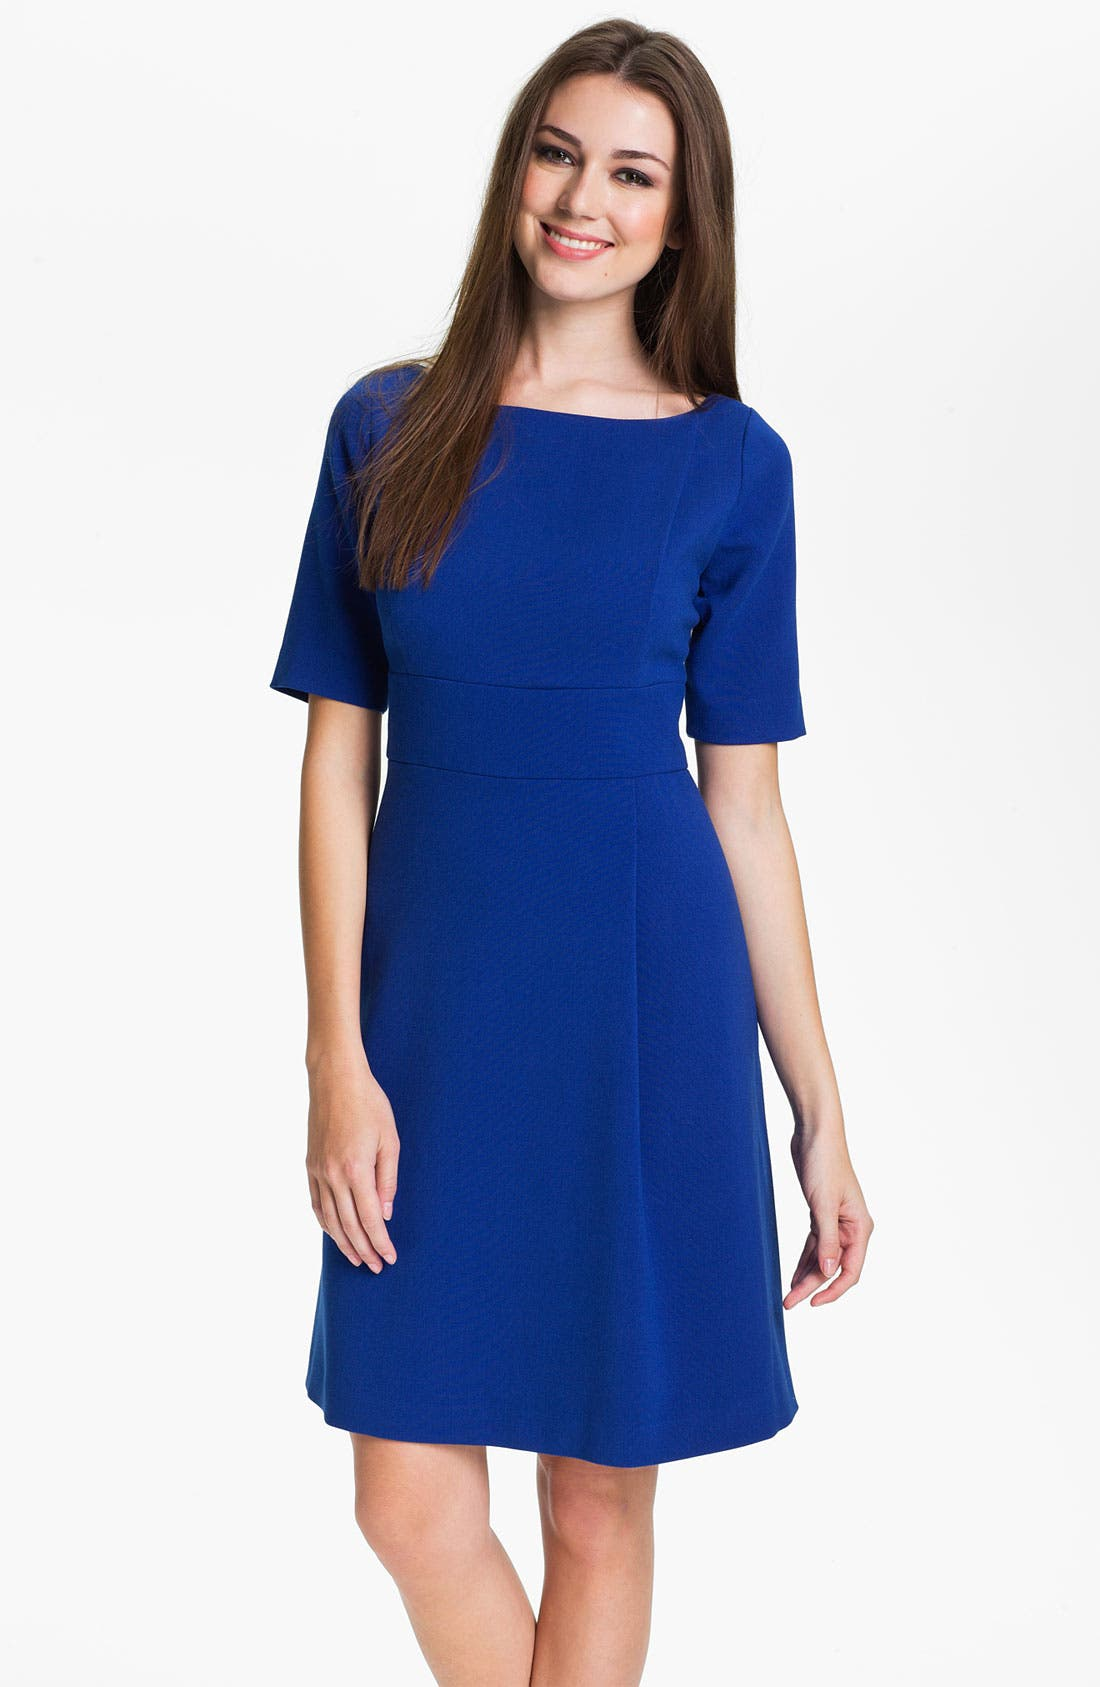 Alternate Image 1 Selected - Eliza J Elbow Sleeve Seam Detail Crepe Dress